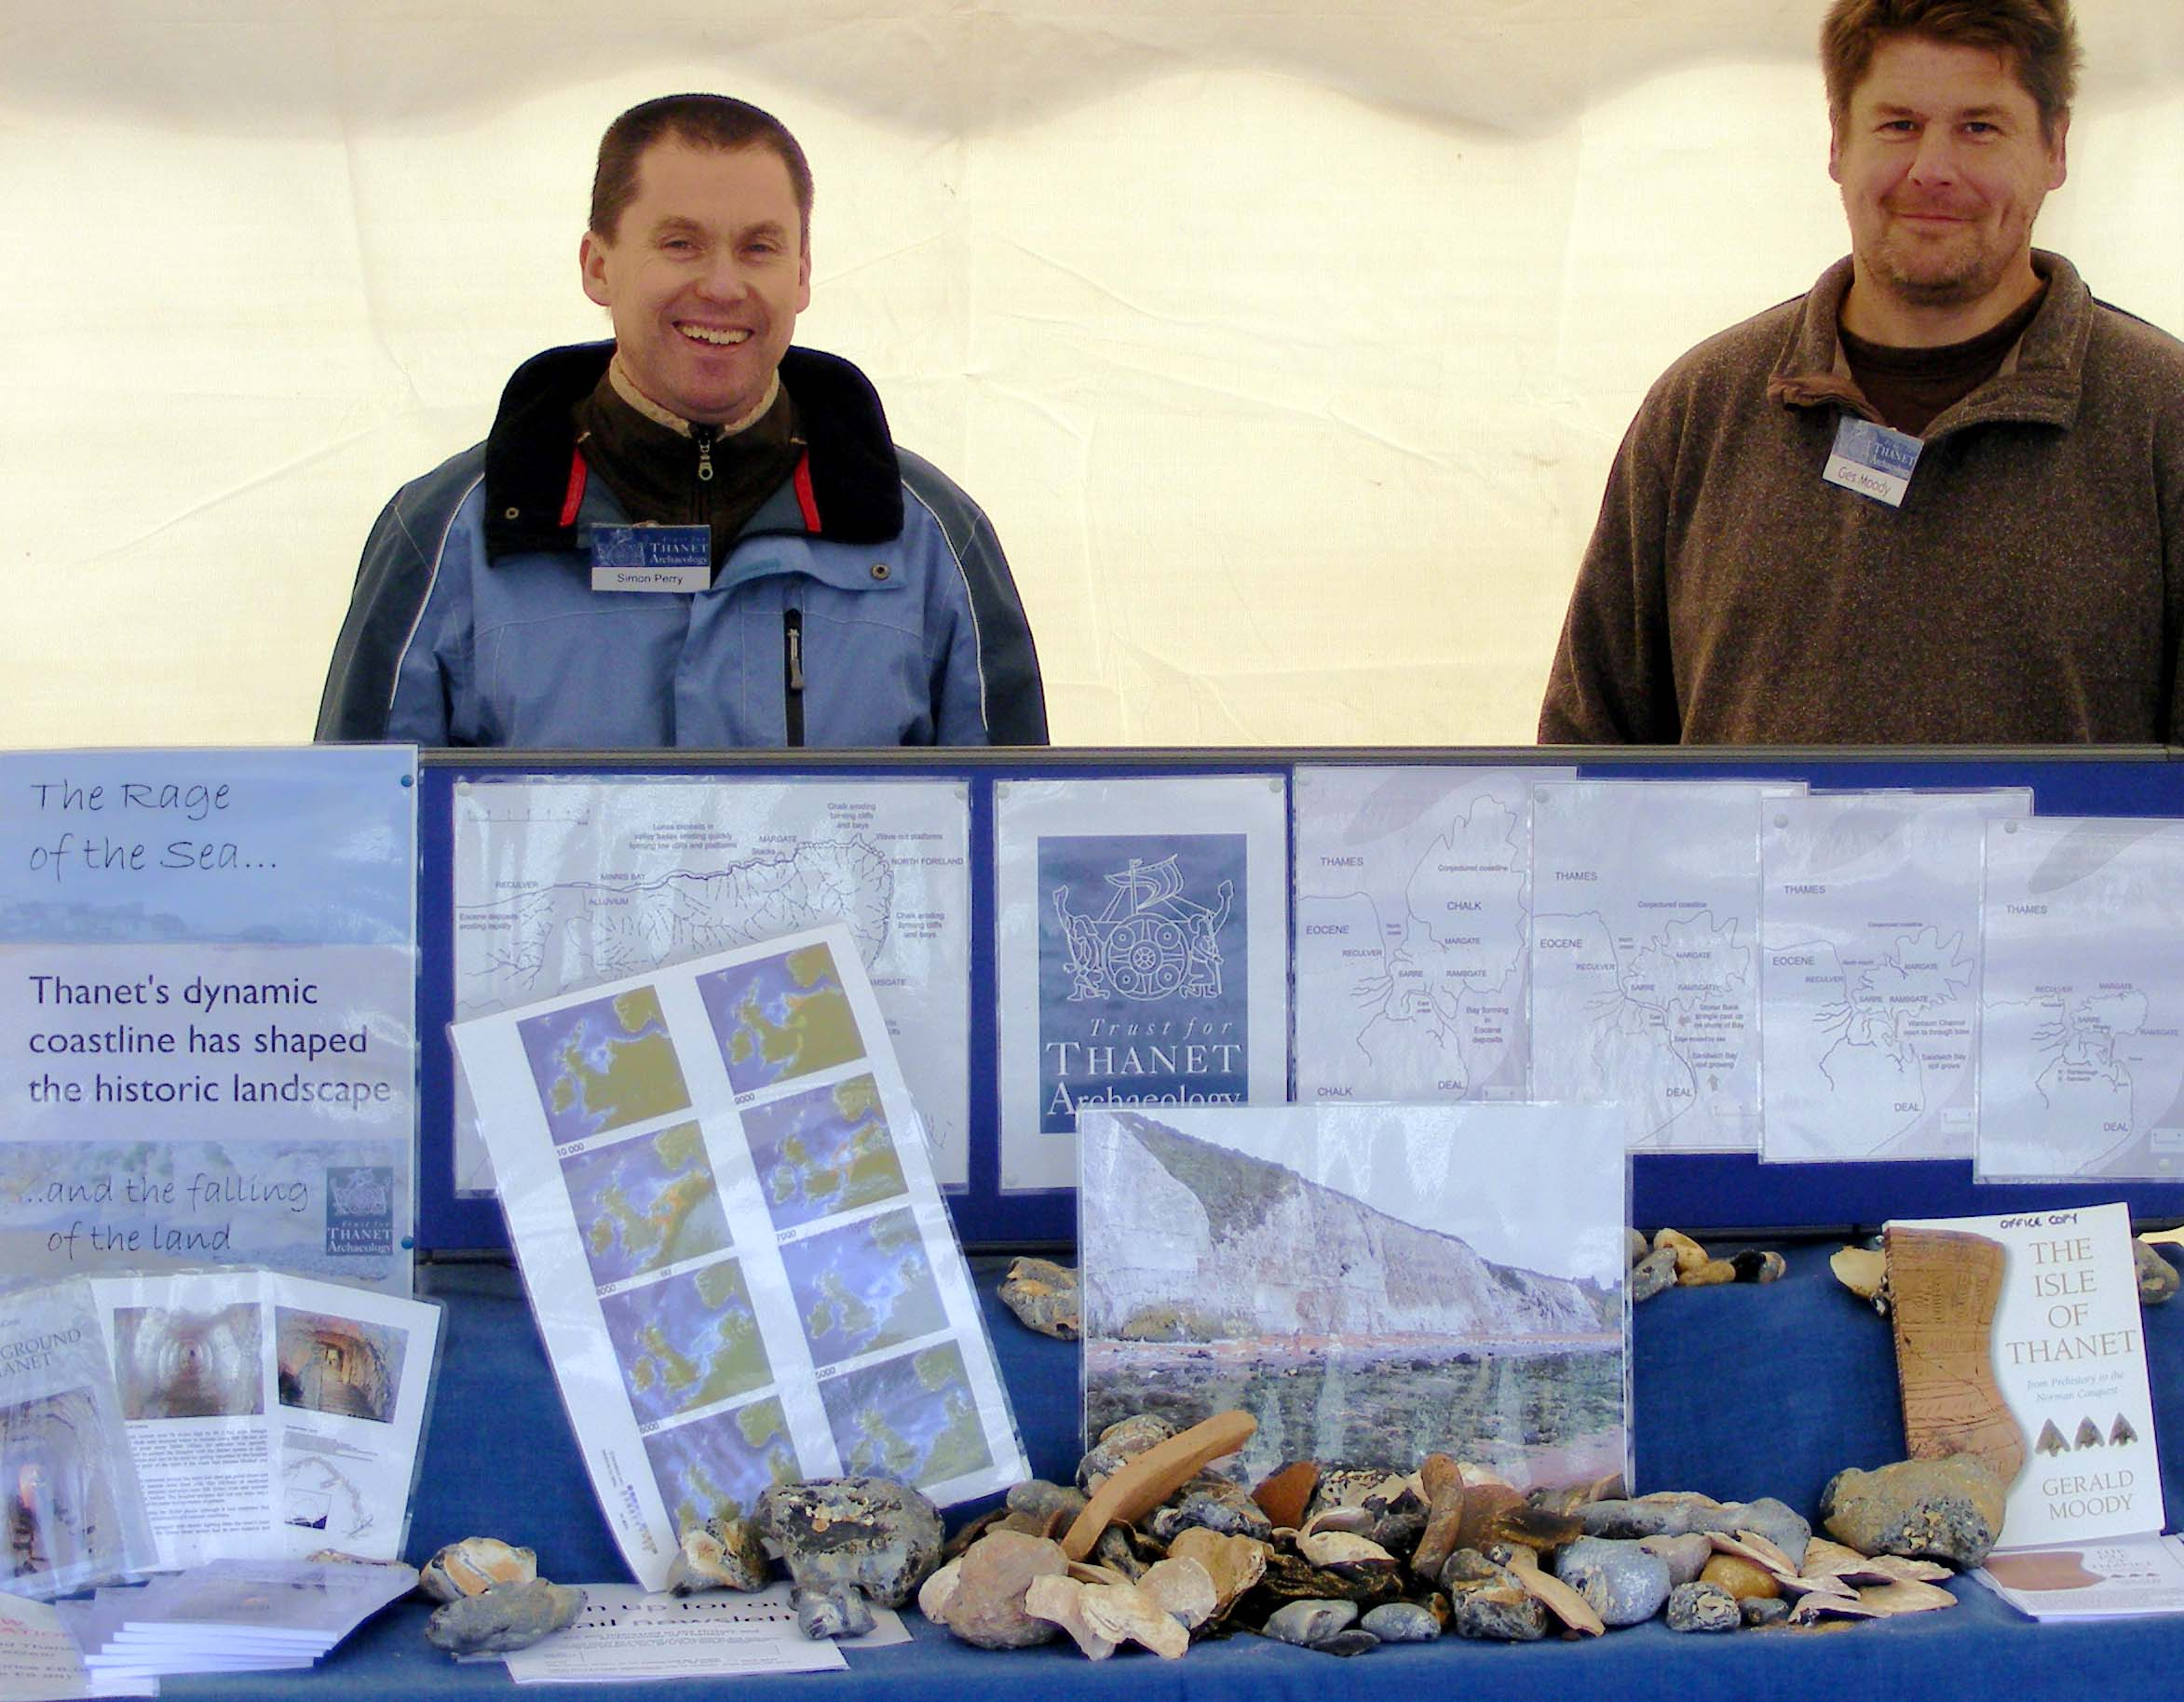 Picture of our stall at Historic Coast Ramsgate